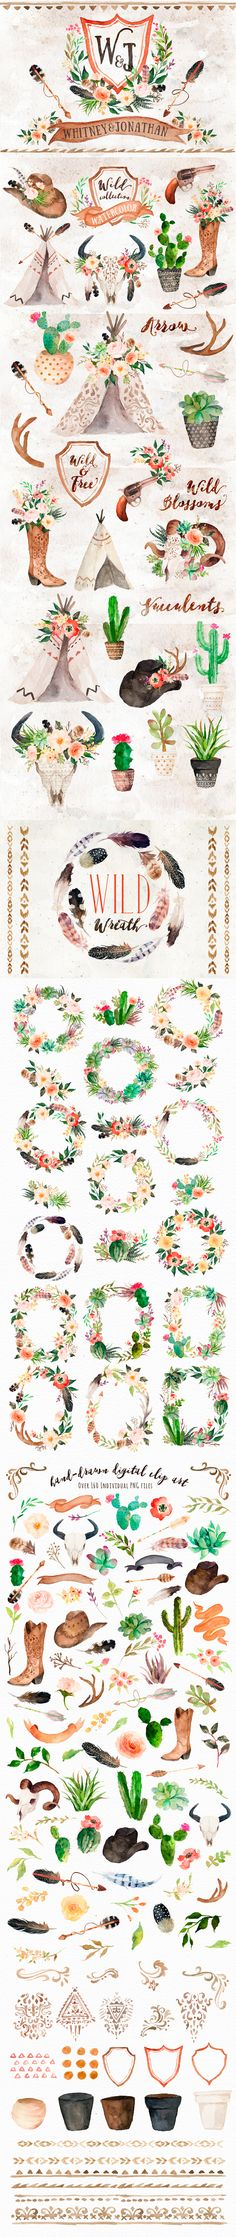 rustic wedding country western style feminine clip art cowgirl boot wedding invitation heraldry floral wreaths feathers gun tipi cactus cowboy hat cowgirl hat succulent flower pots floral design elements Clip Art Feminine / Girly Graphics / PNG / Stock Images for Wedding Invitations or Party Invites, watercolor